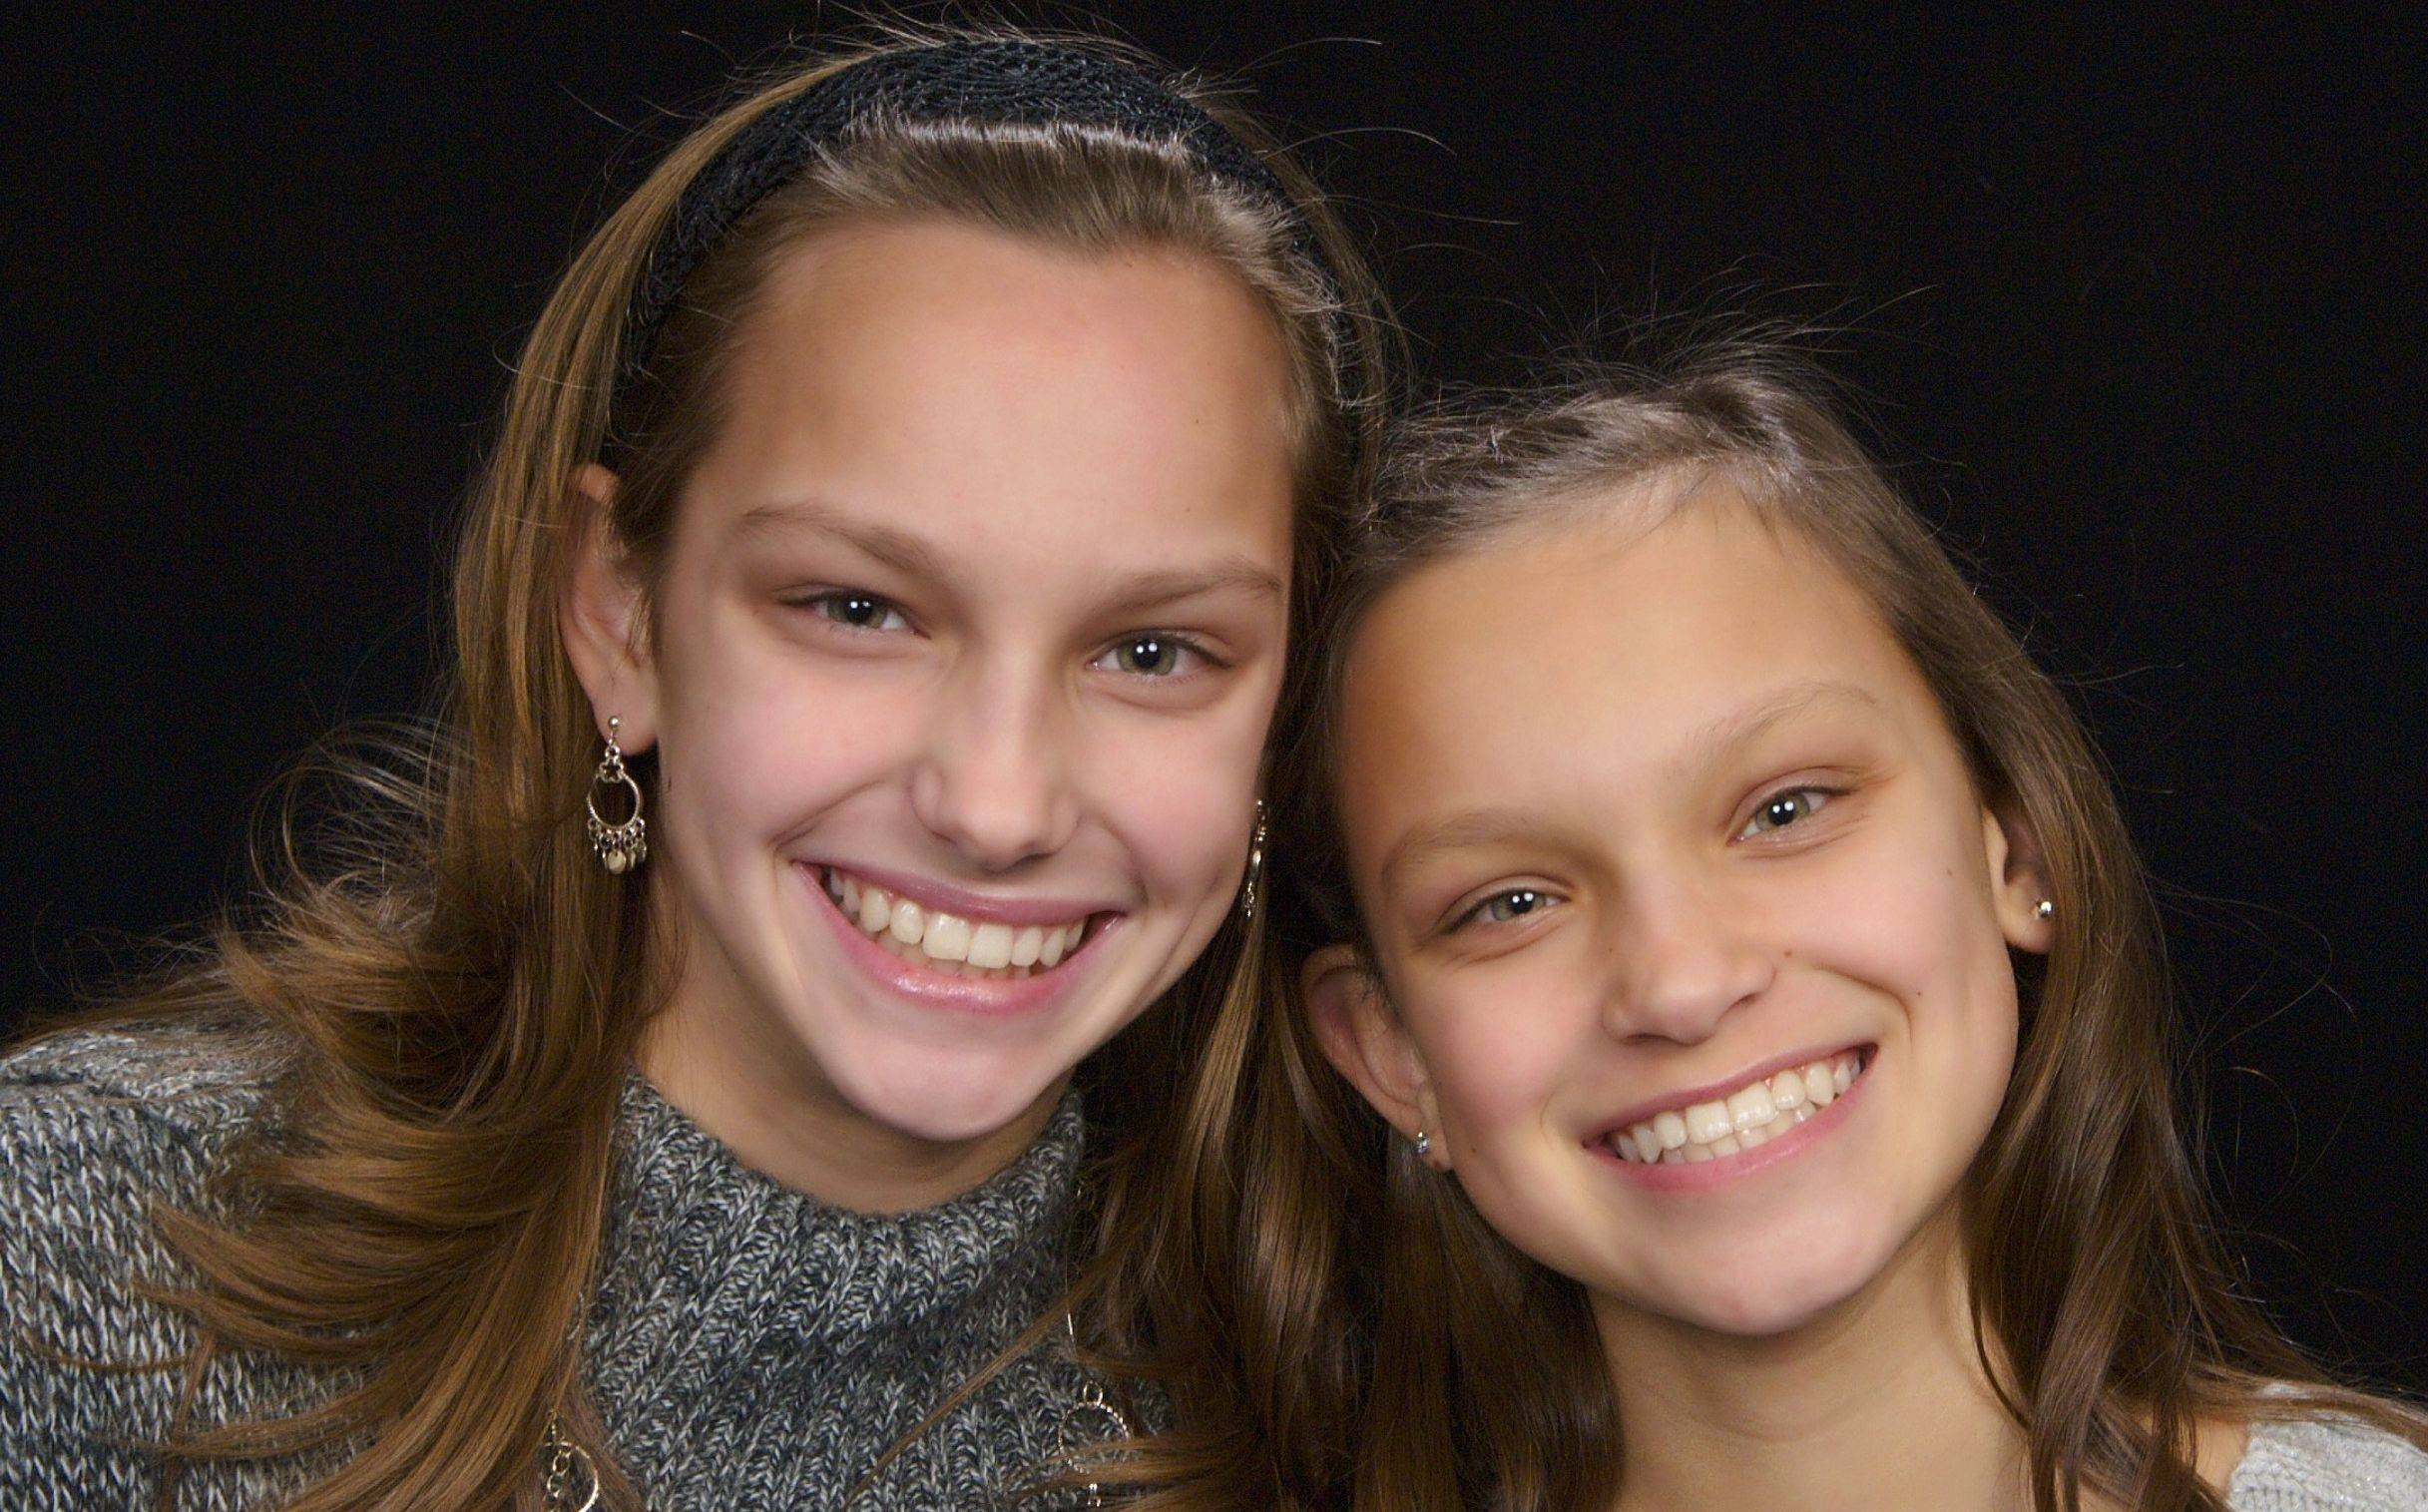 "Twin sisters Courtney, left, and Kaitlyn Goetz of Manhattan, Ill. at age 12. Their mother, Michelle, didn't have much of a choice for what day the pair would be born because of pregnancy complications. She said the girls like their Leap Day birthday. ""I wouldn't change it,"" she said."